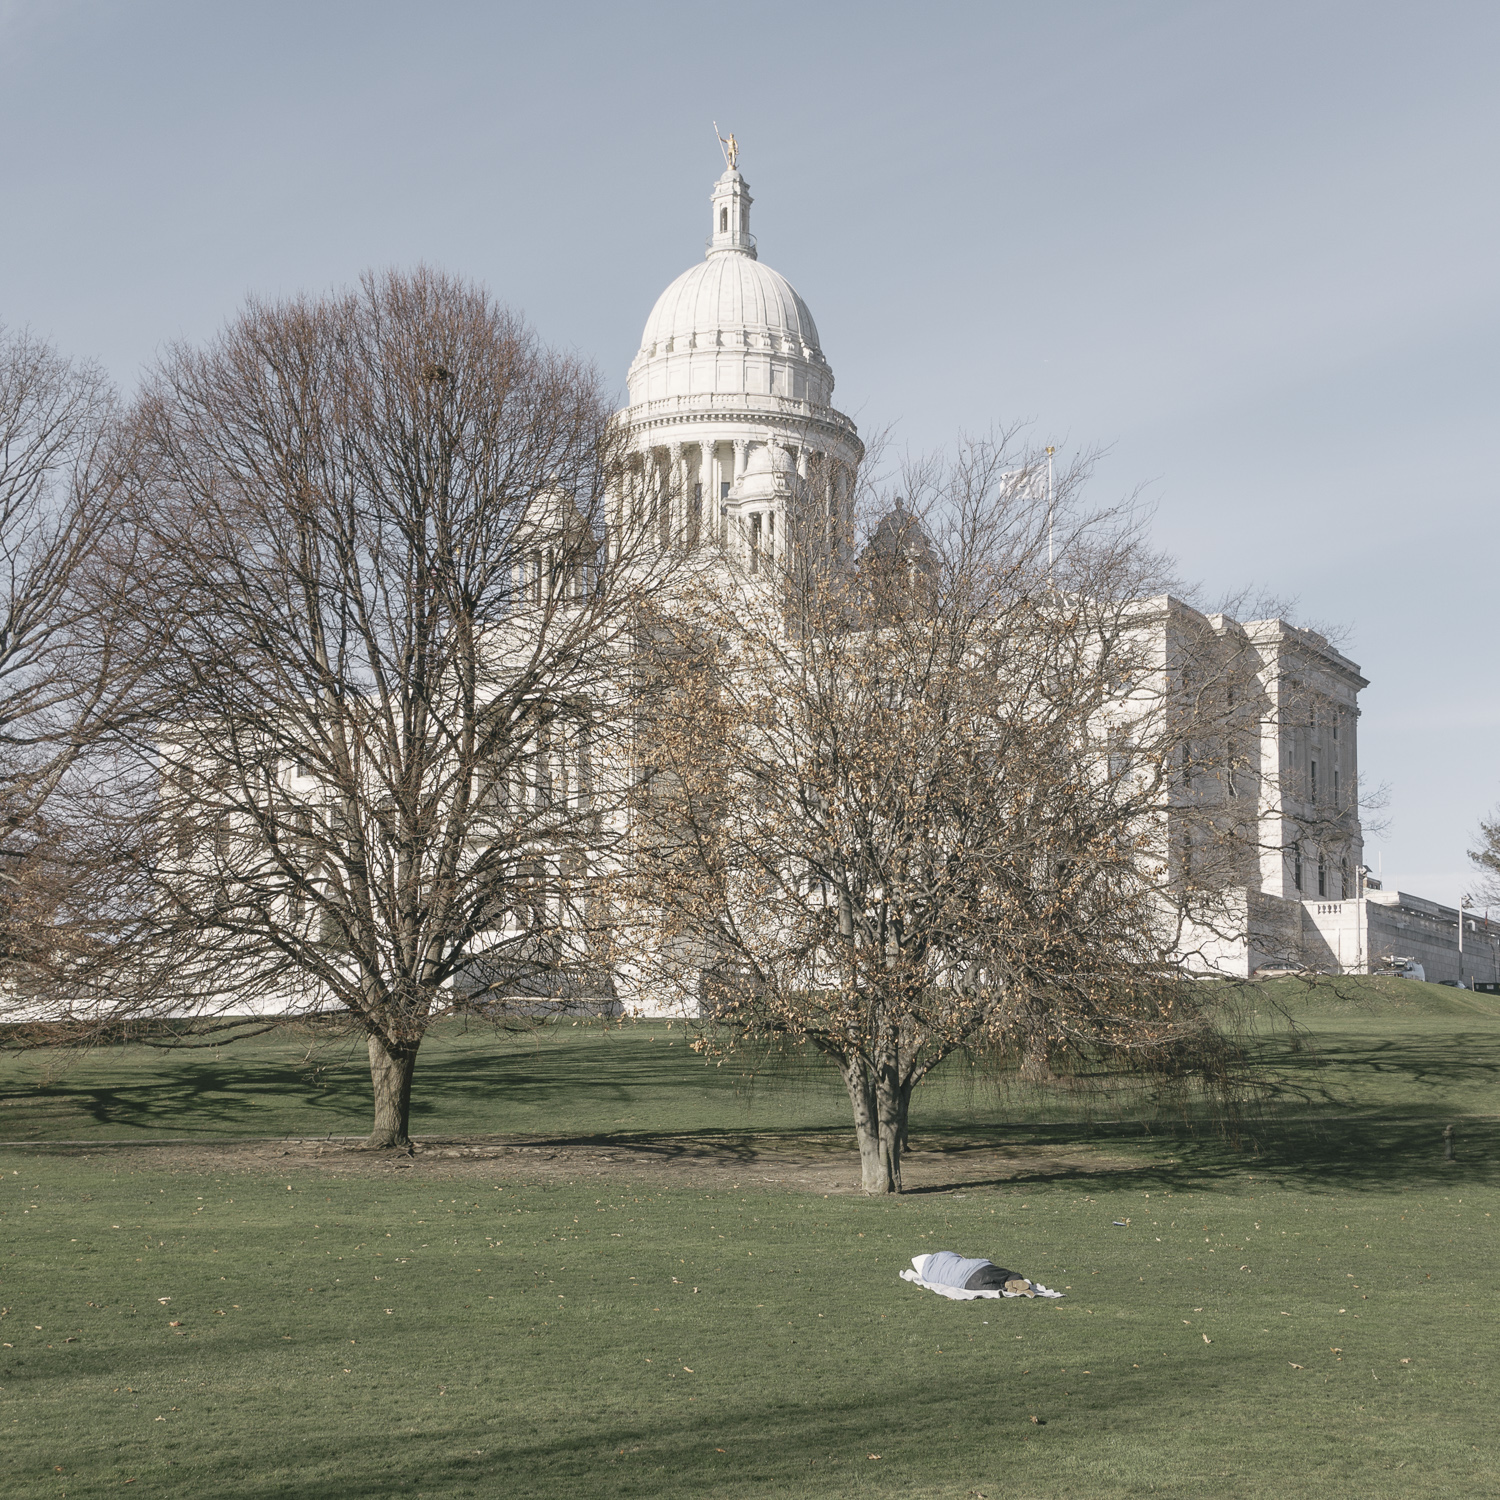 untitled (man sleeping on state house lawn) , Providence, Rhode Island, 2015